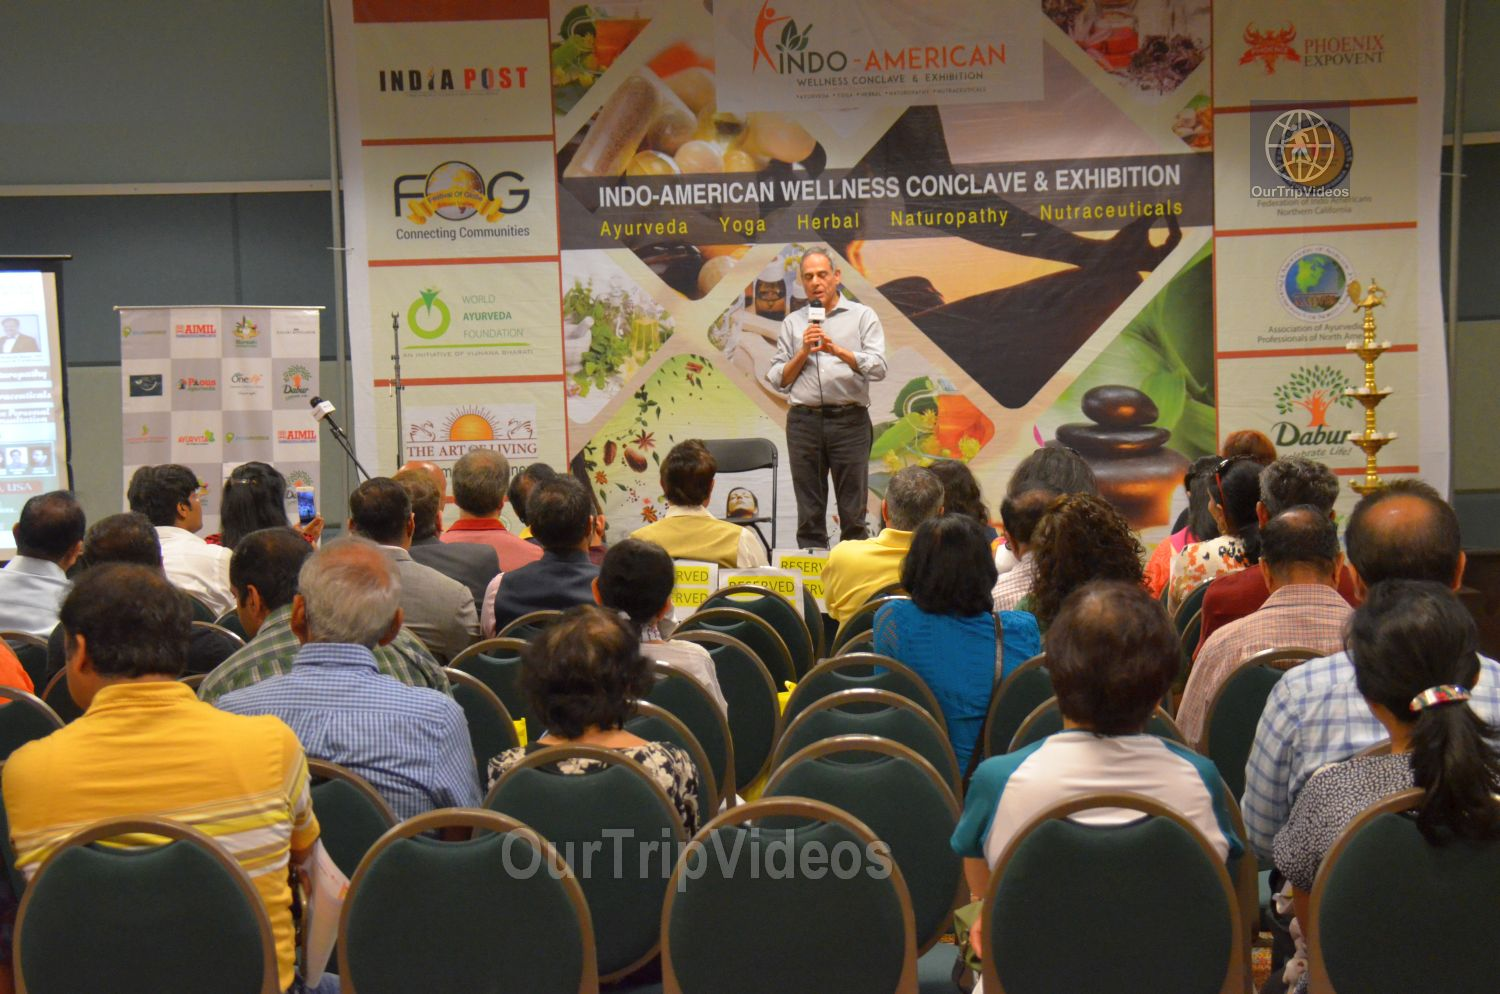 Indo-American Wellness Conclave and Exhibition, Santa Clara, CA, USA - Picture 1 of 25